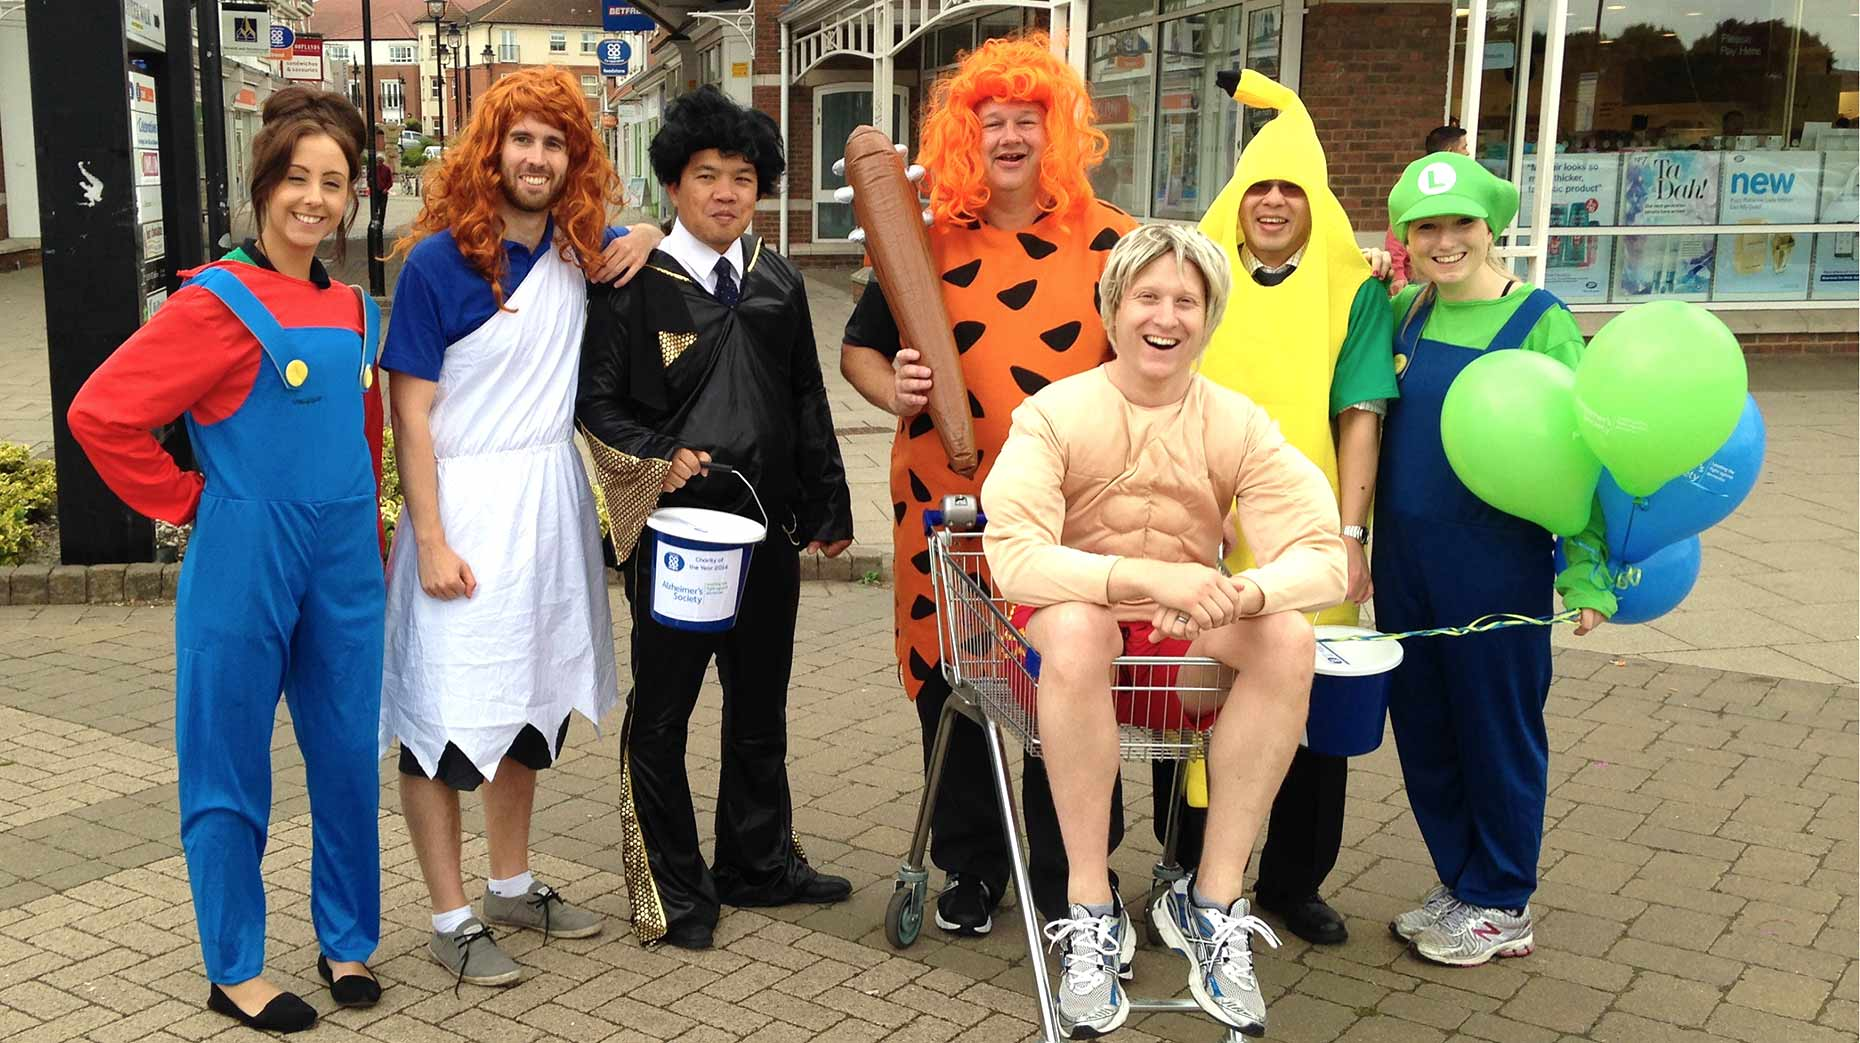 Lincolnshire Co-op's Head Office staff from left: Becky Halliday, Ben James, Chris Bautista, Tom Whittock, Richard Whittaker, Will Ngao and Danielle Martin before their charity relay.